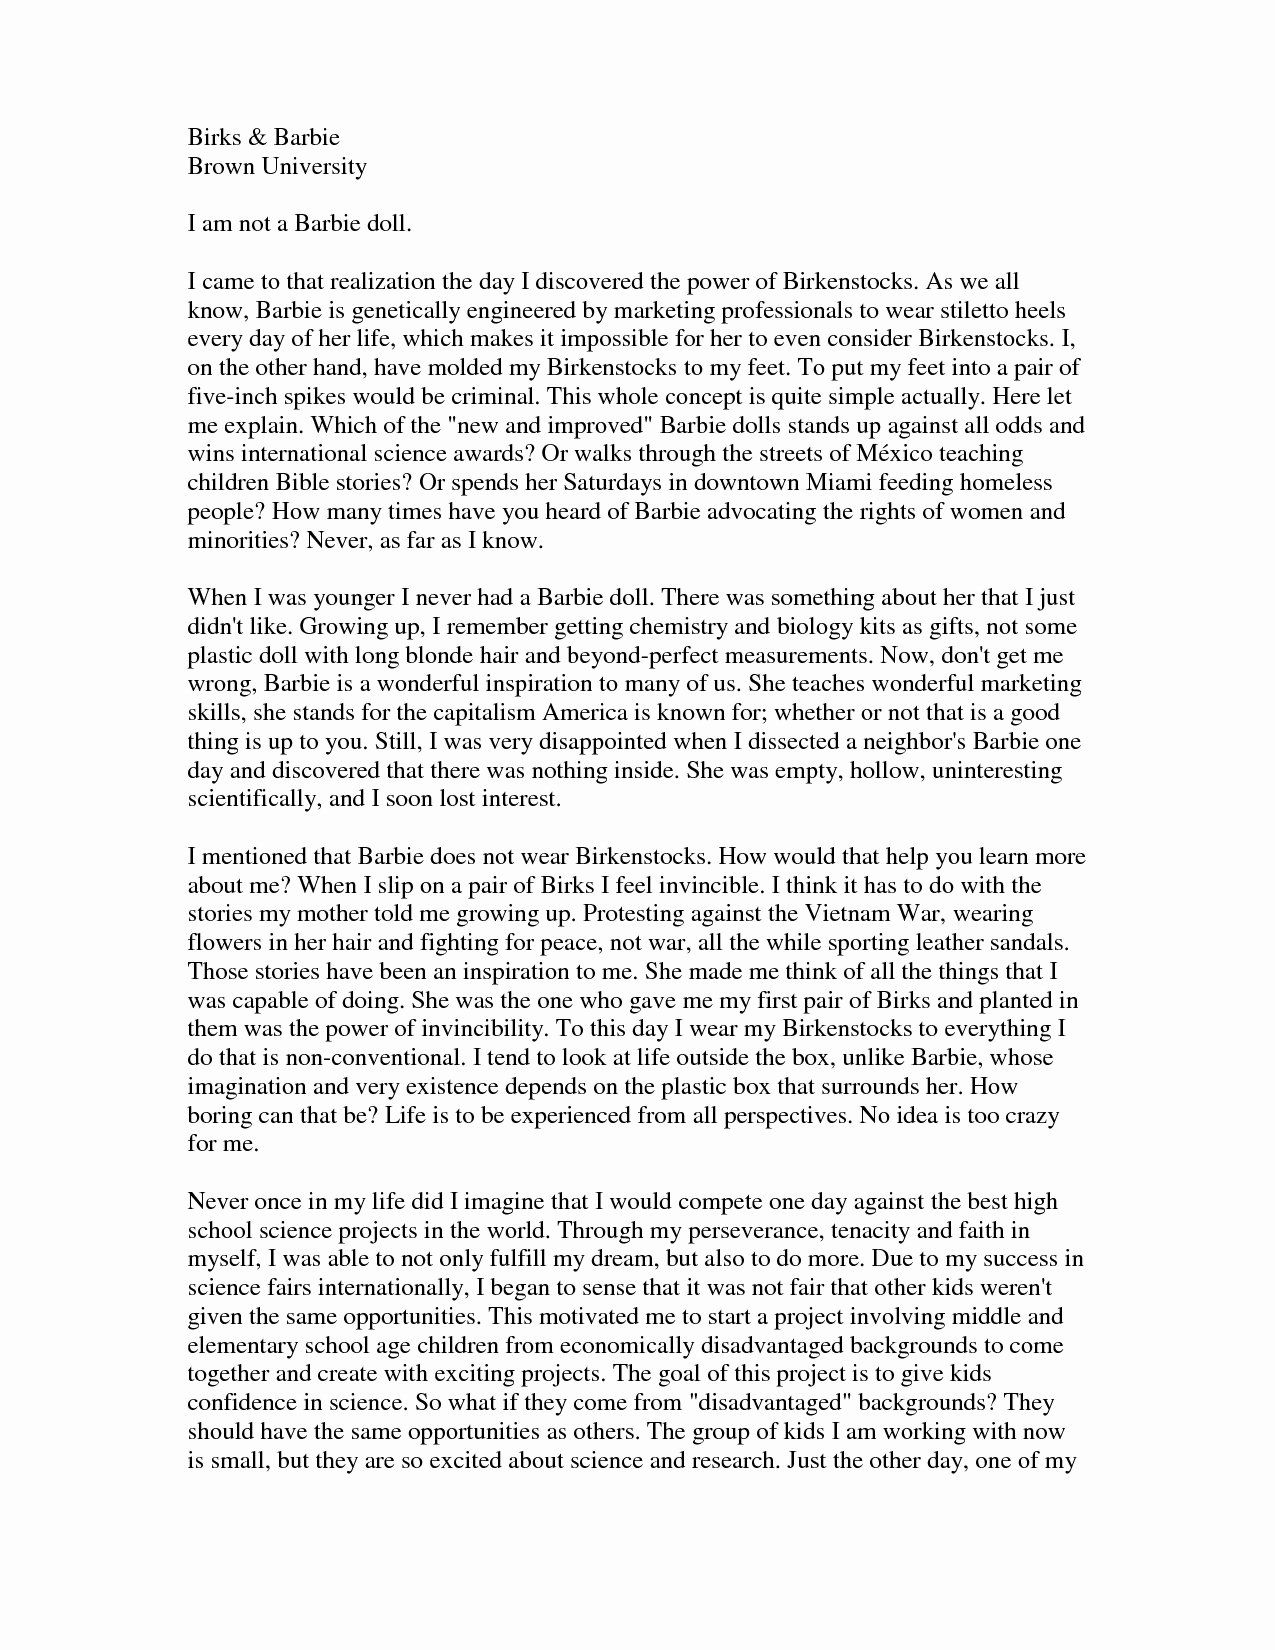 Full Size of College Essay Format Heading